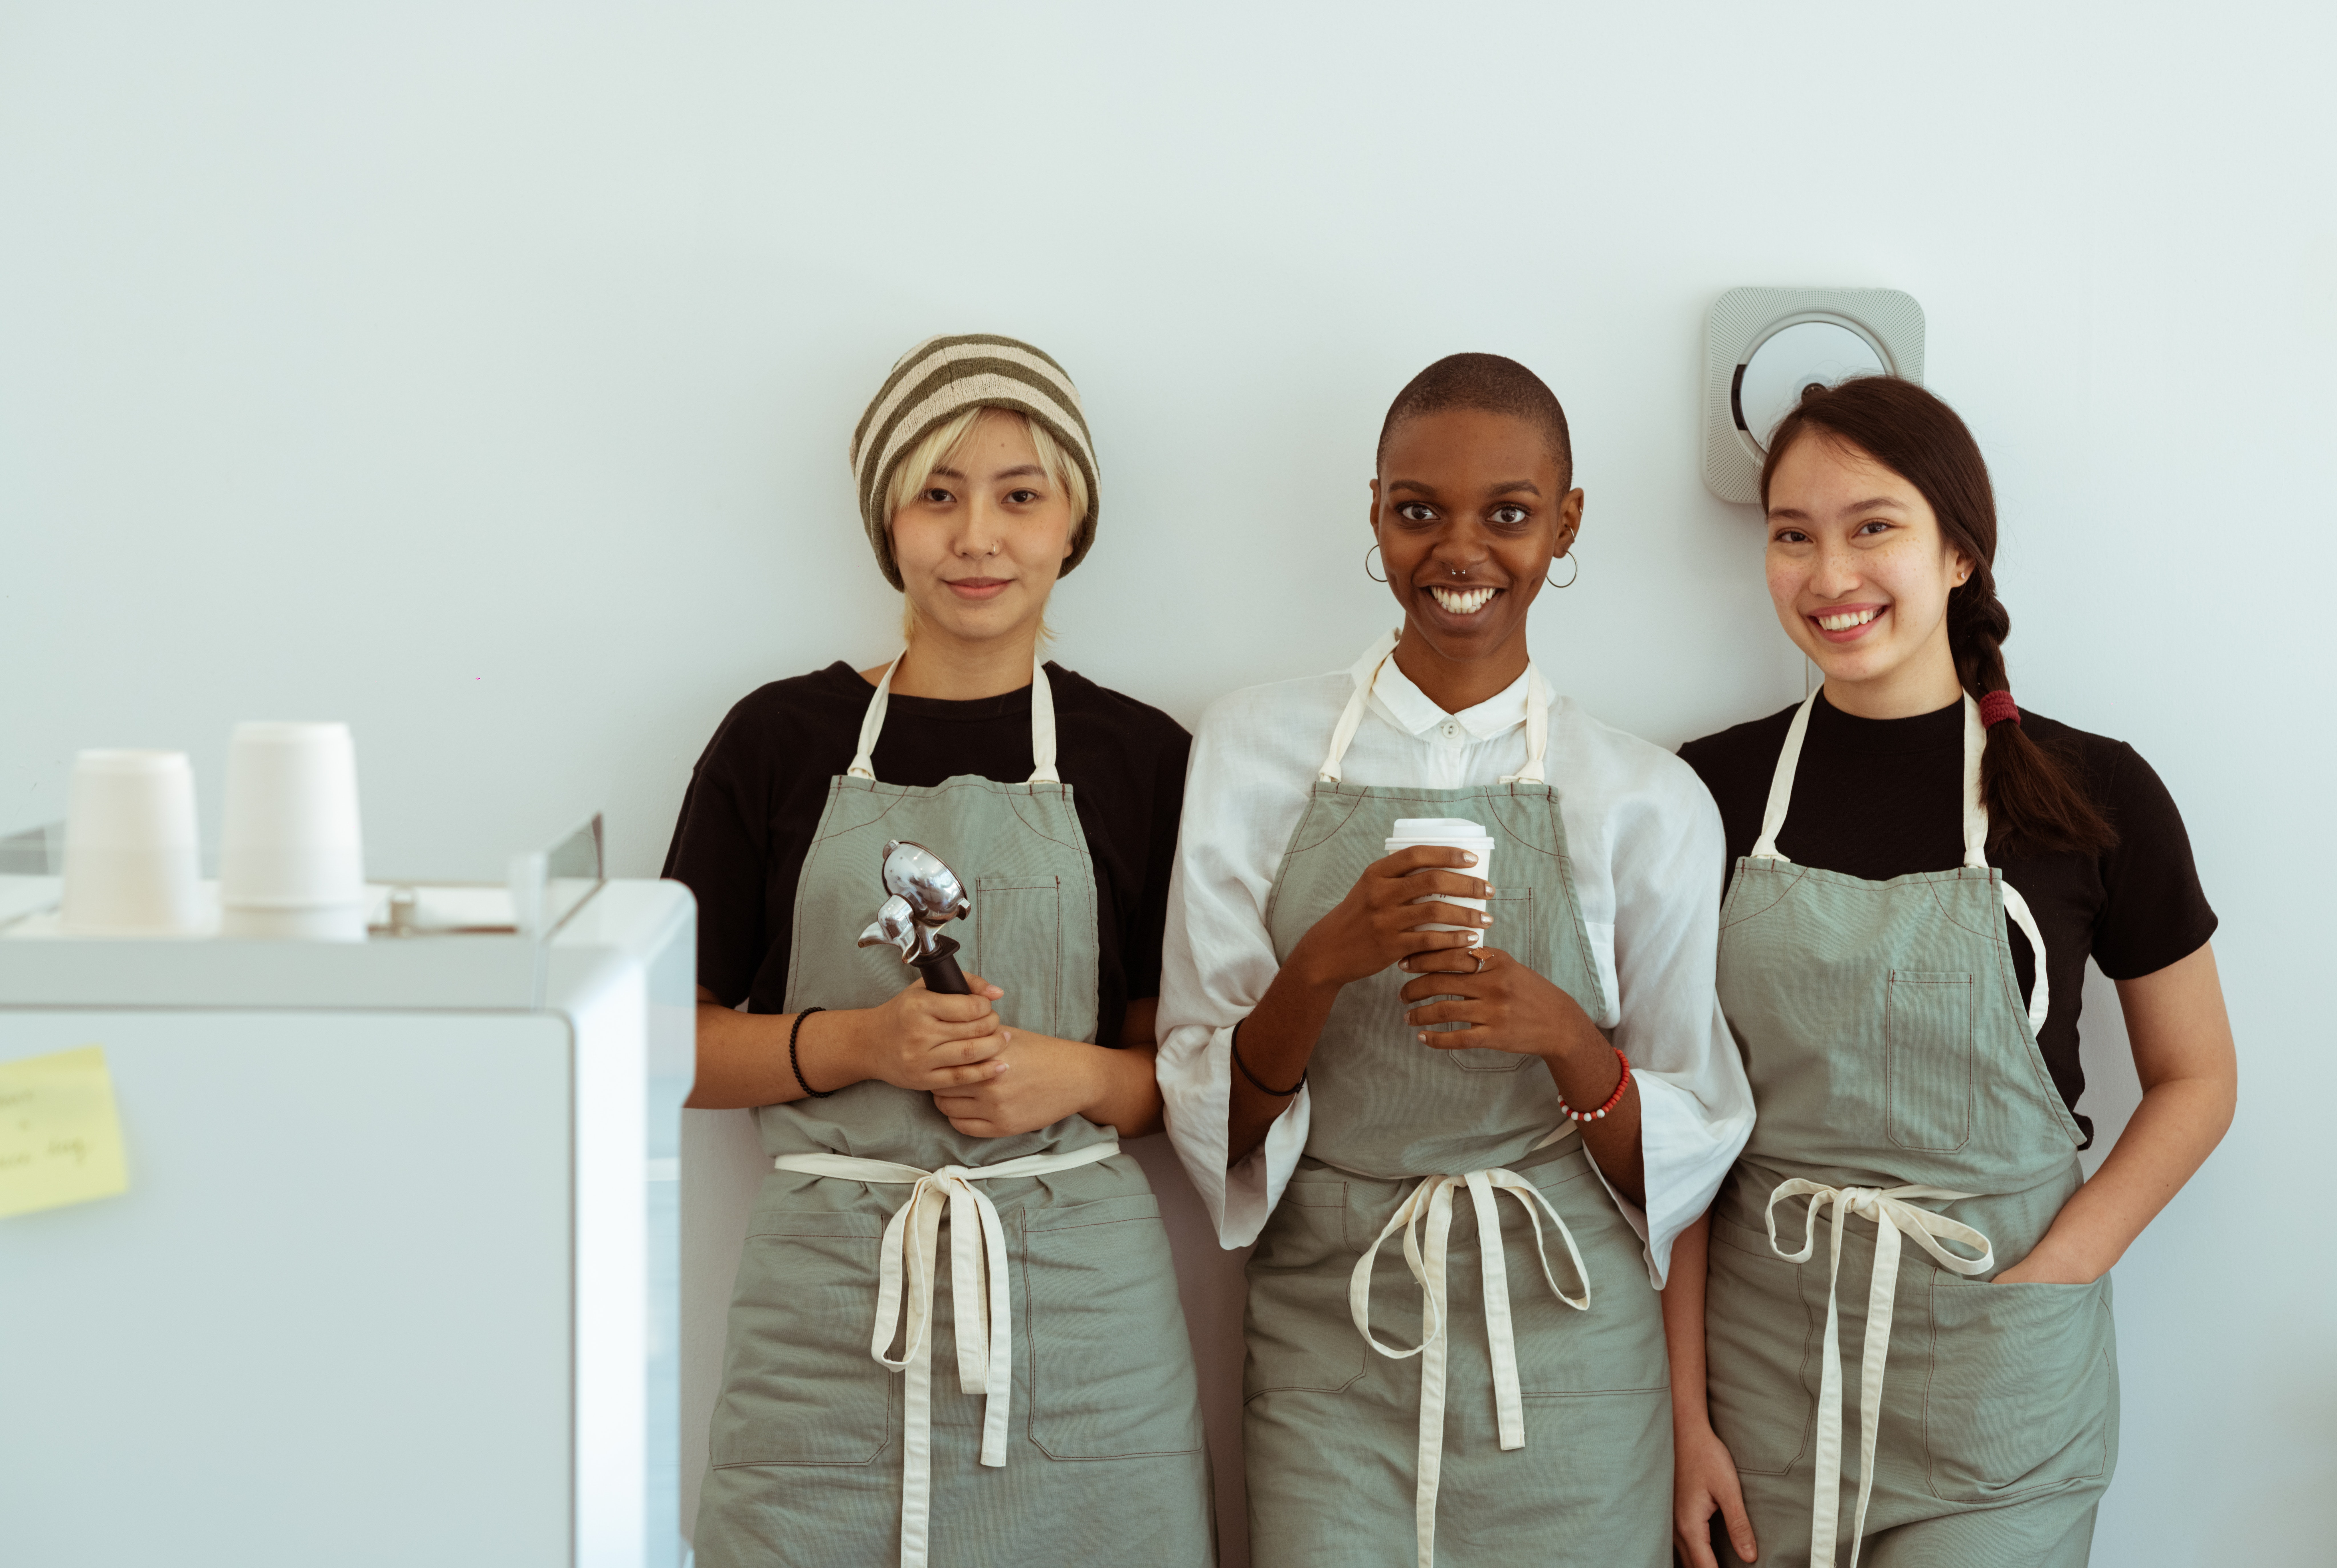 Team of three baristas working in a cafe